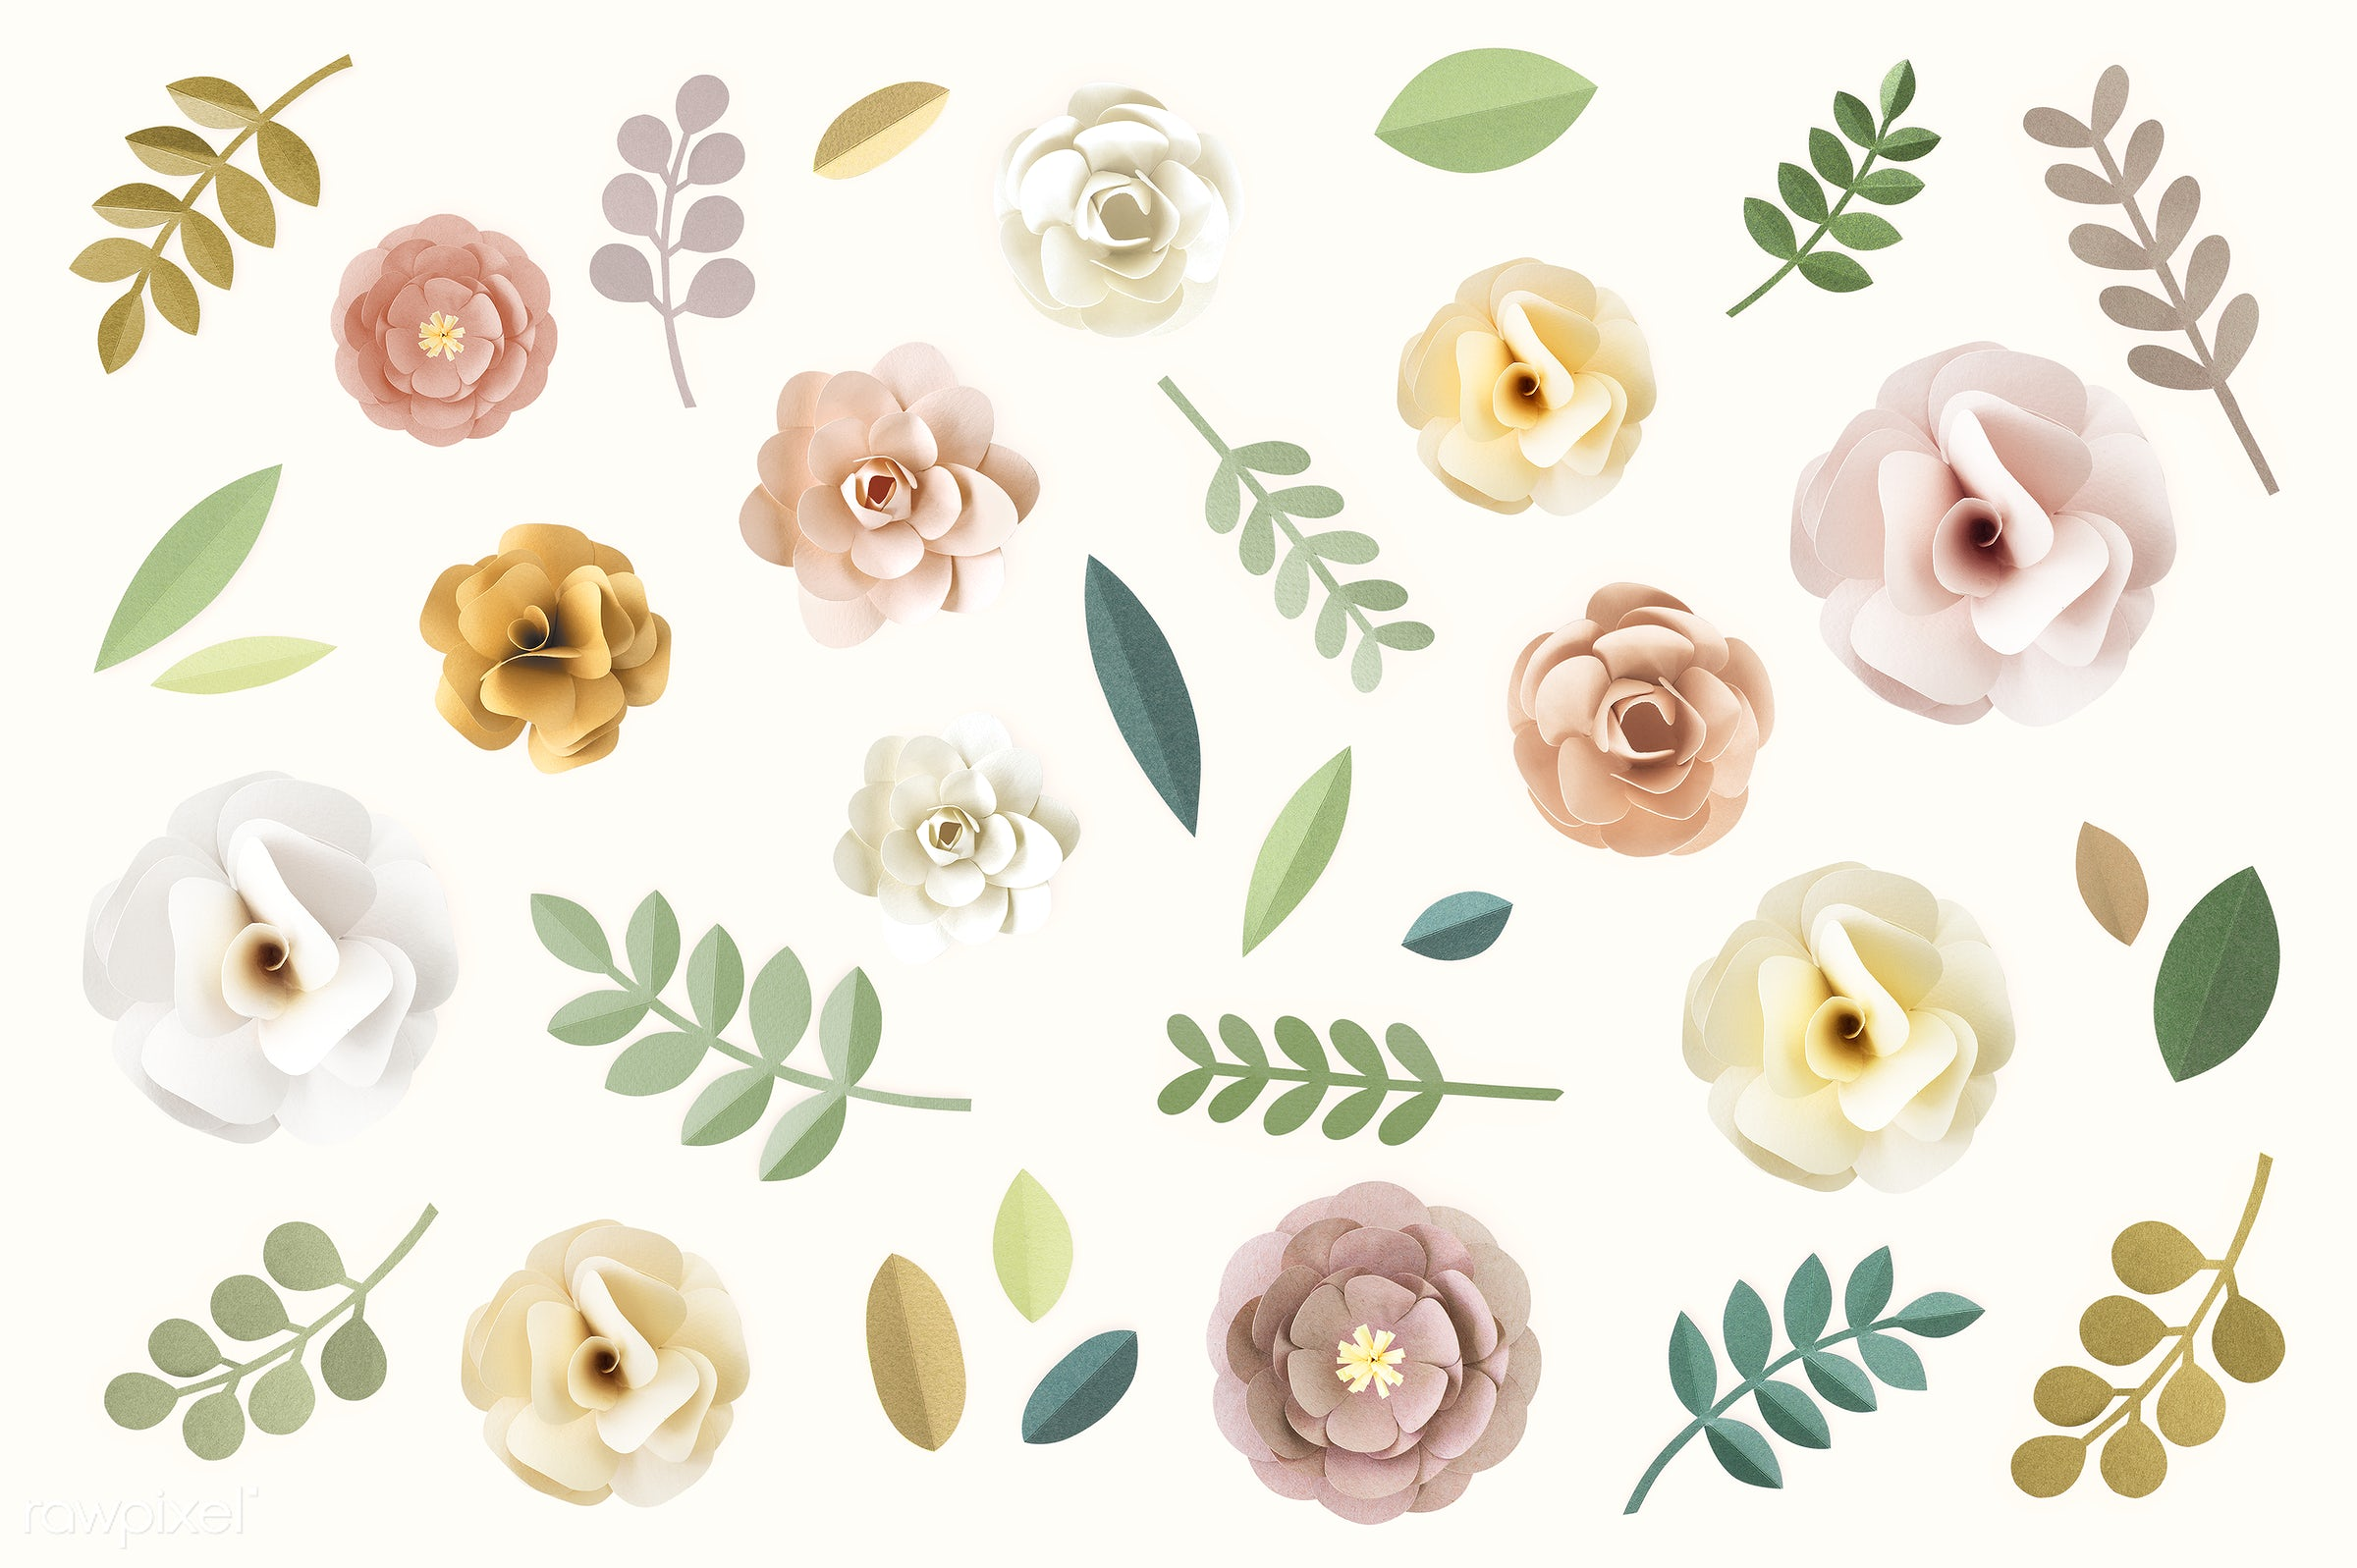 Set of flowers and plants made out of paper - abstract, acacia, art, background, beautiful, blossom, carnation, close-up,...